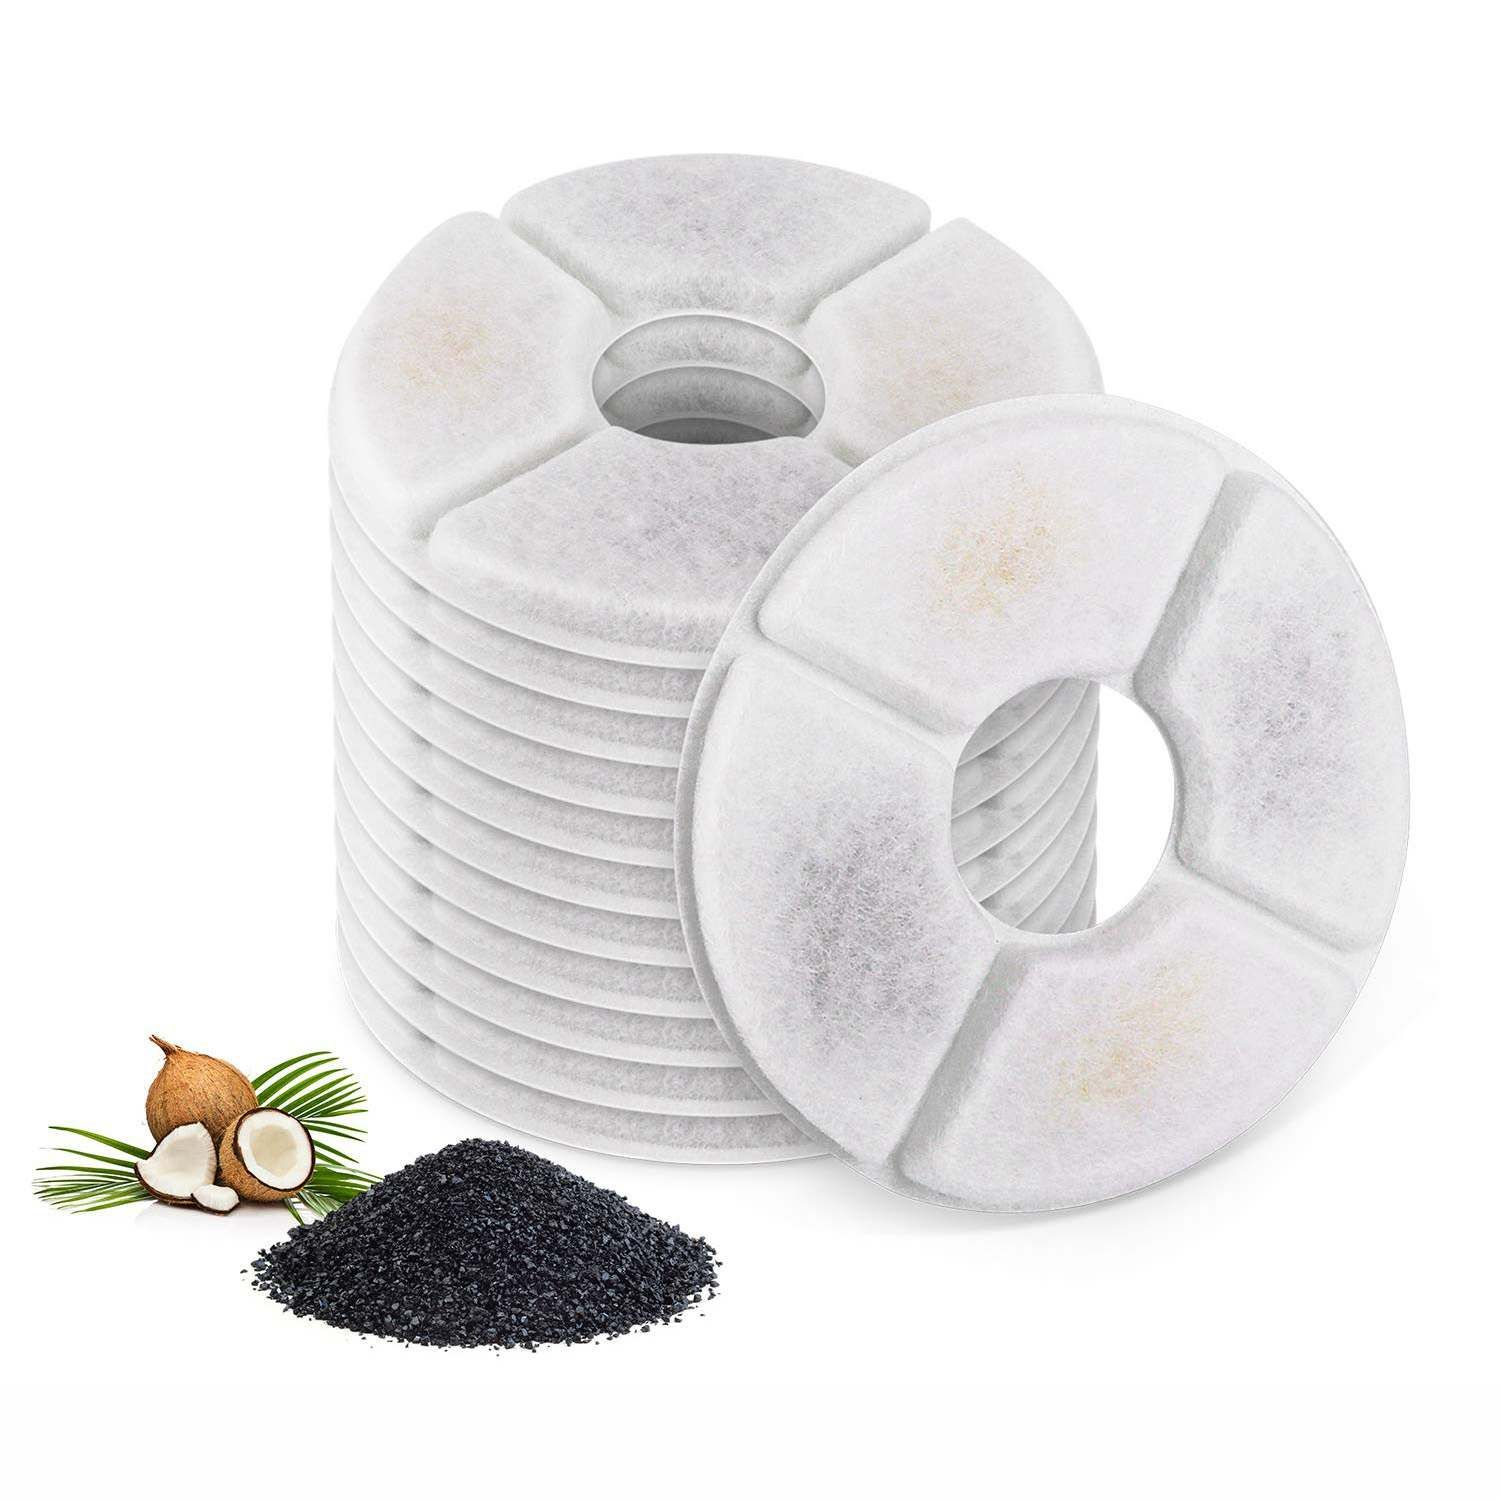 Filters For Cat Fountain-Pack Of 12, Cat Fountain Filters, Suitable For The Flower Fountains And Most Same Size Cat Fountains.